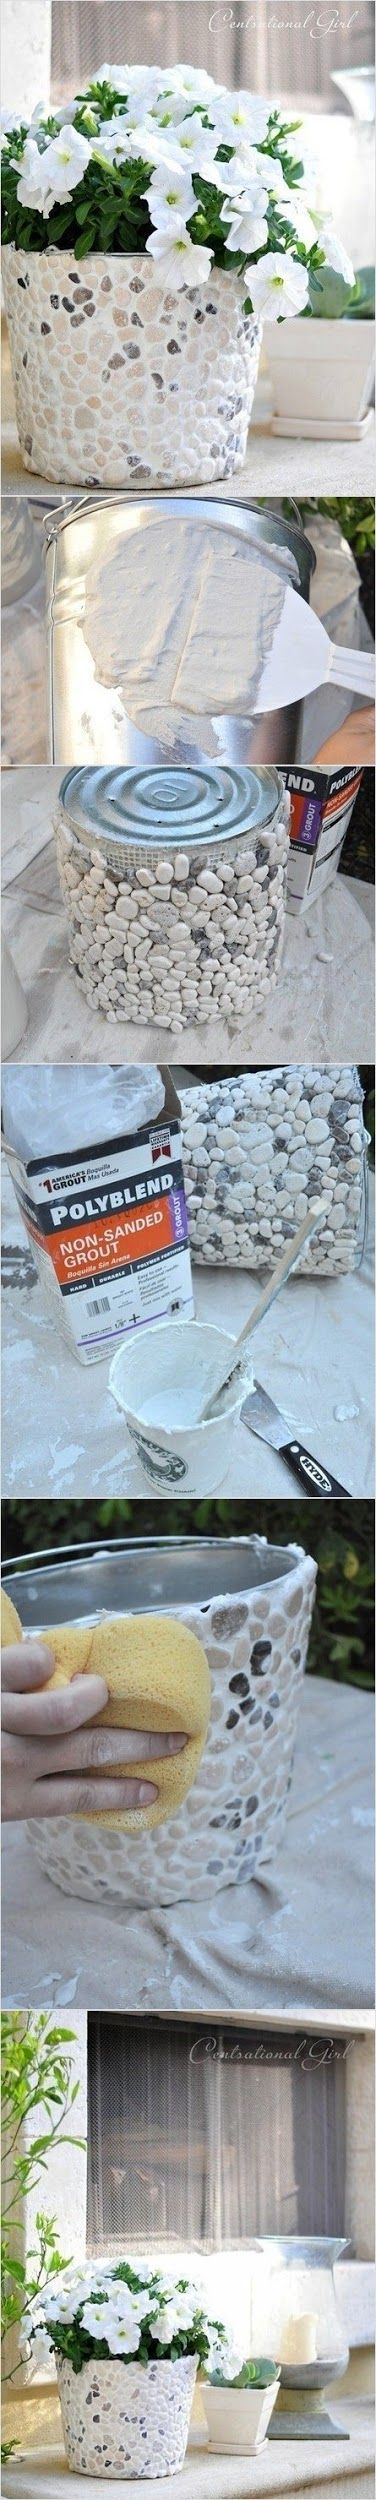 How to make your own stone flower pot